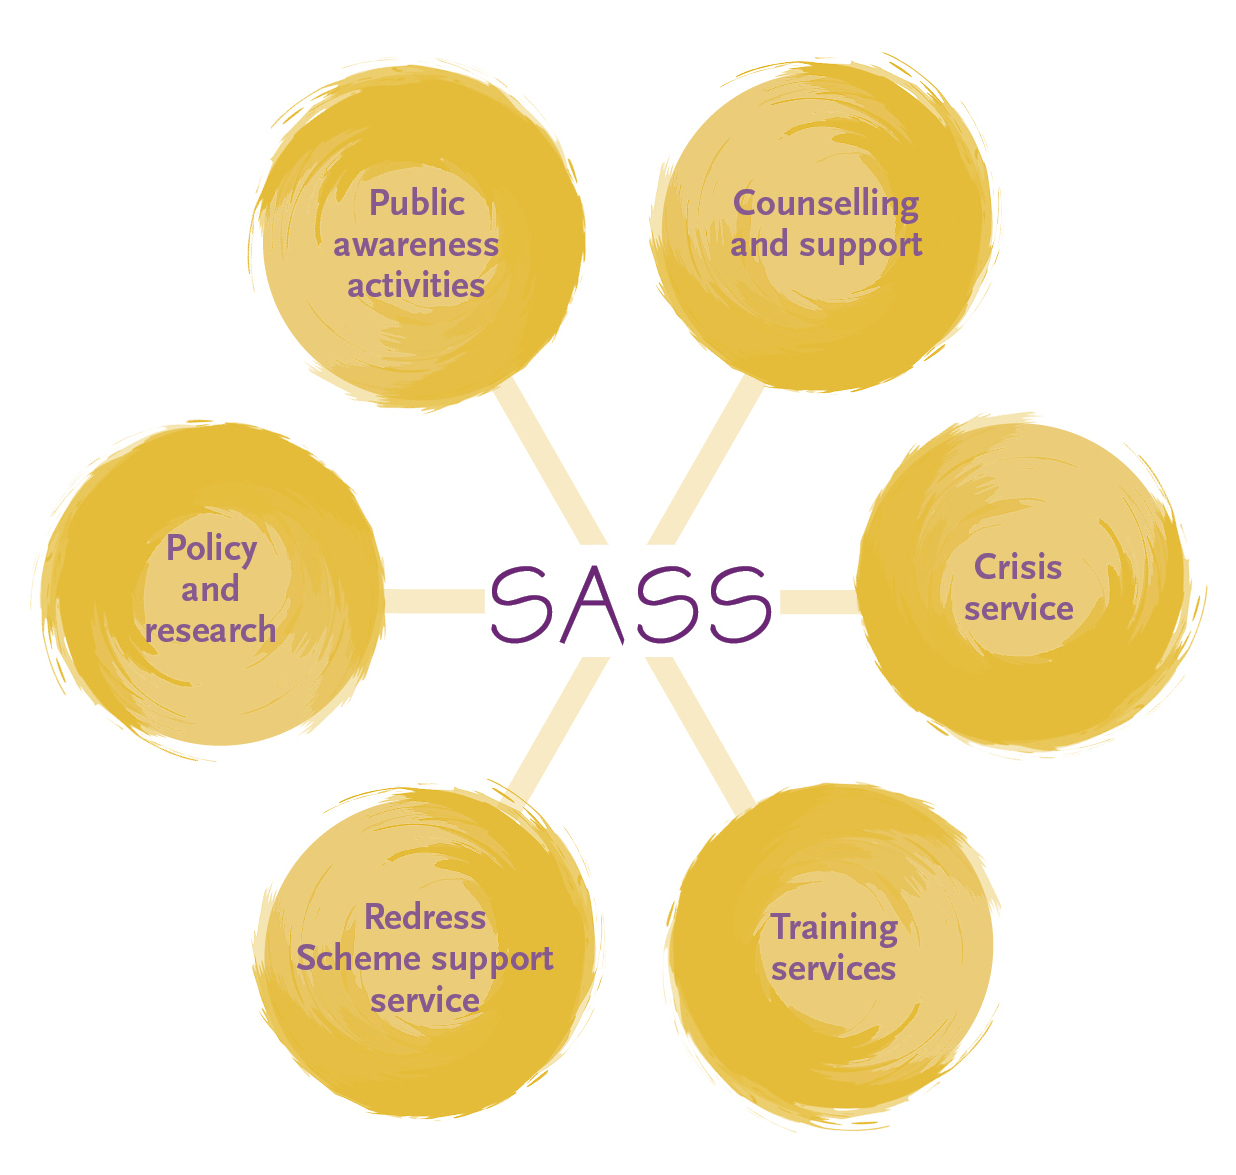 SASS graphic